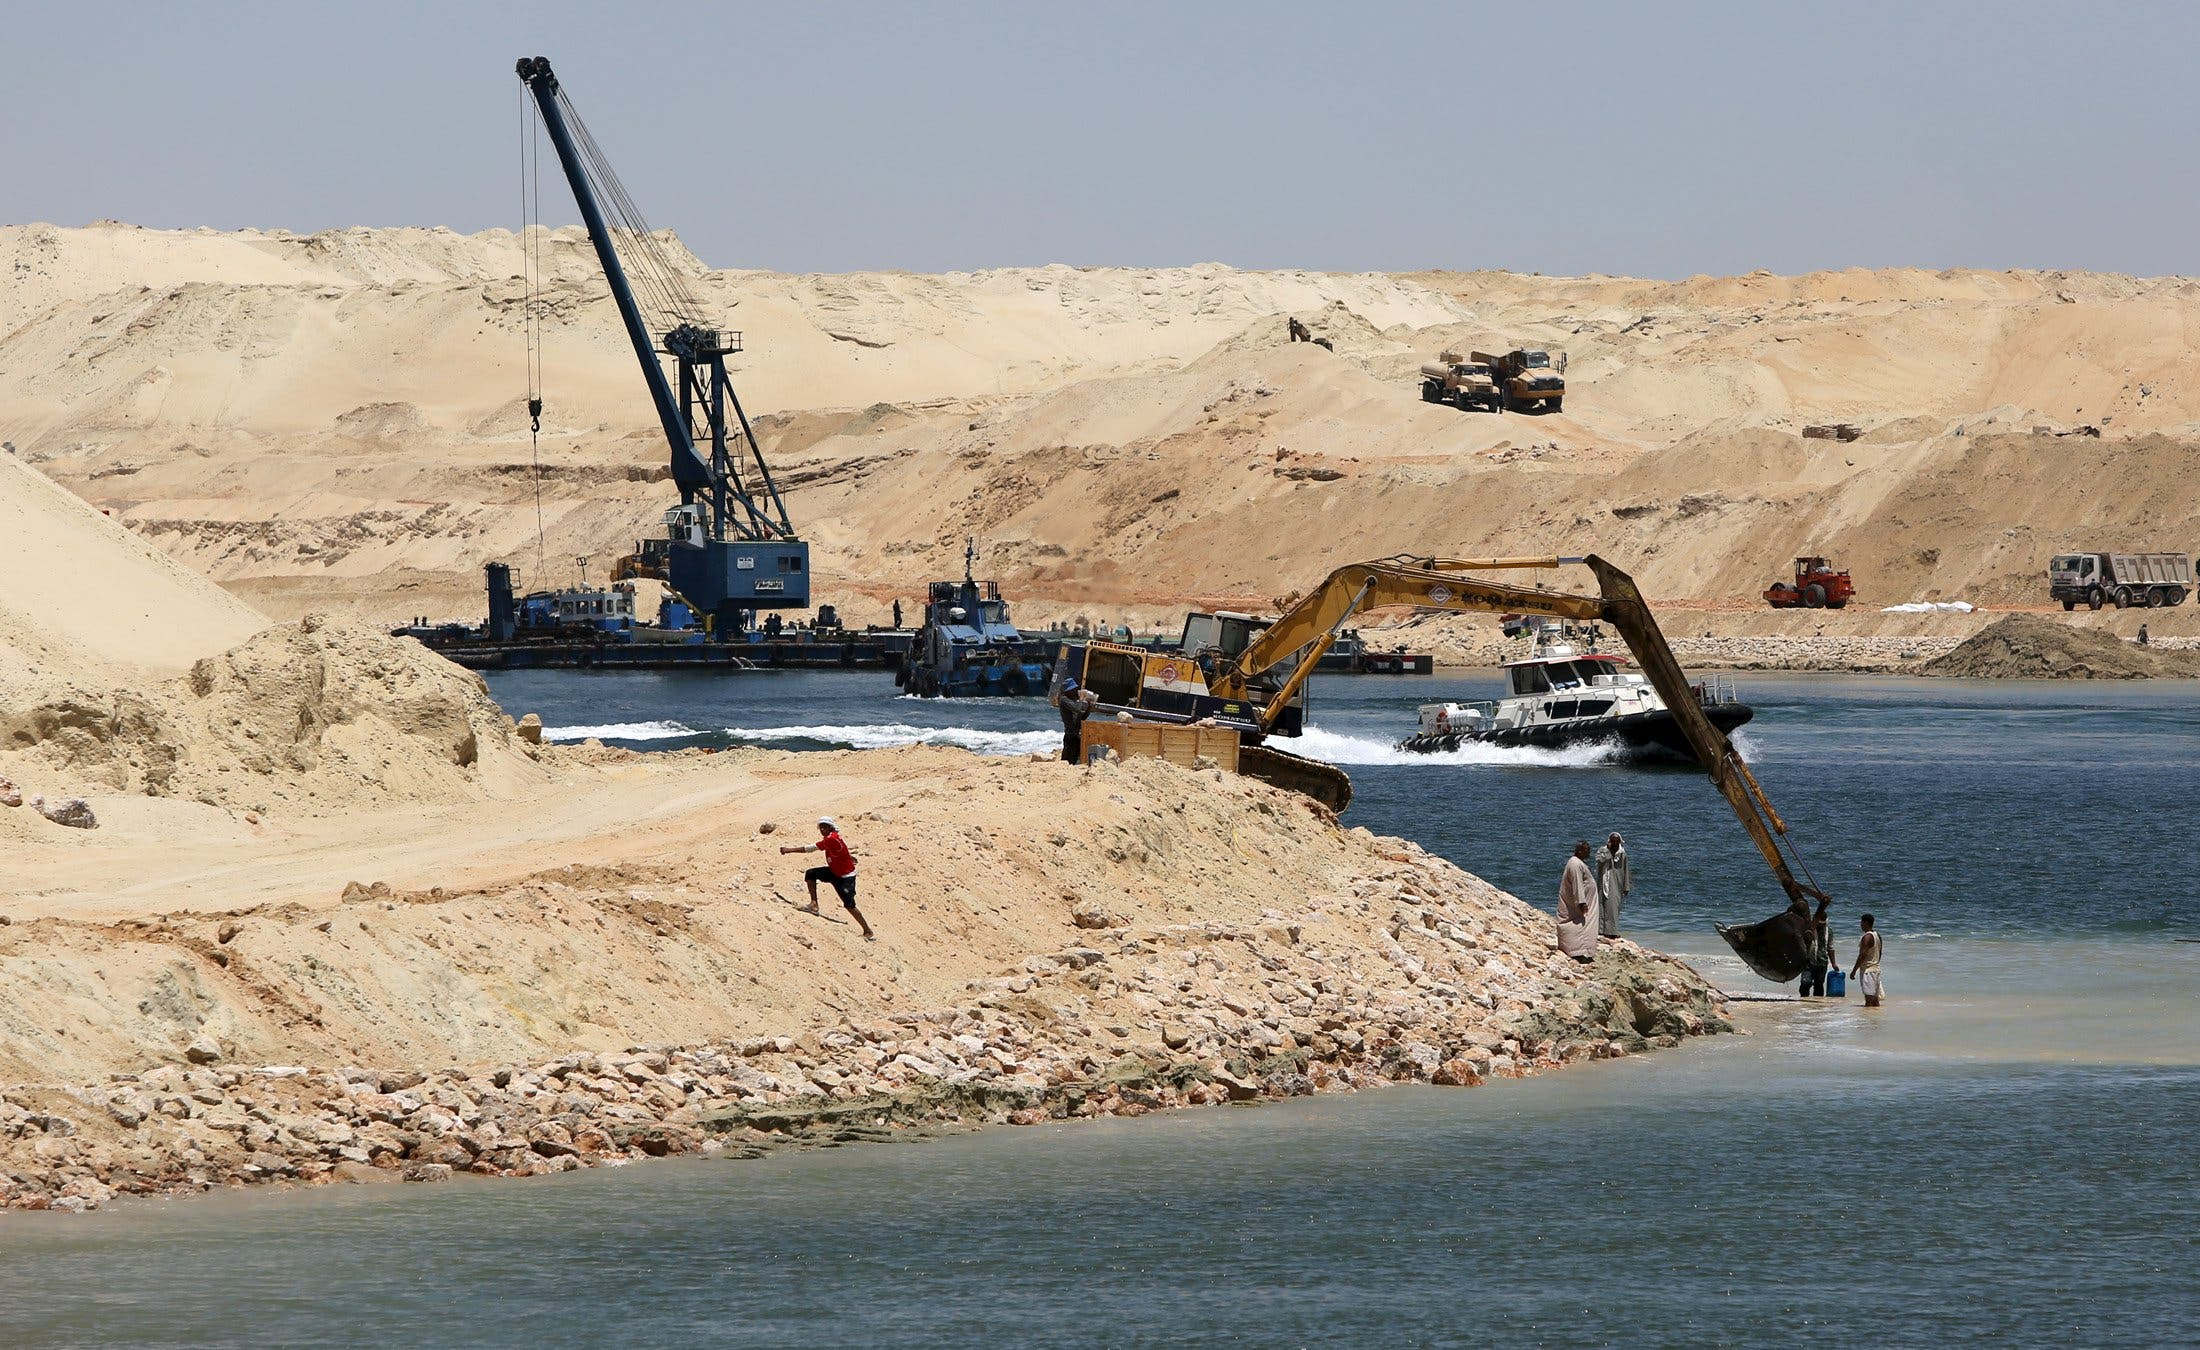 Dredge work is carried out at the New Suez Canal, Ismailia, Egypt, July 29, 2015. Reuters